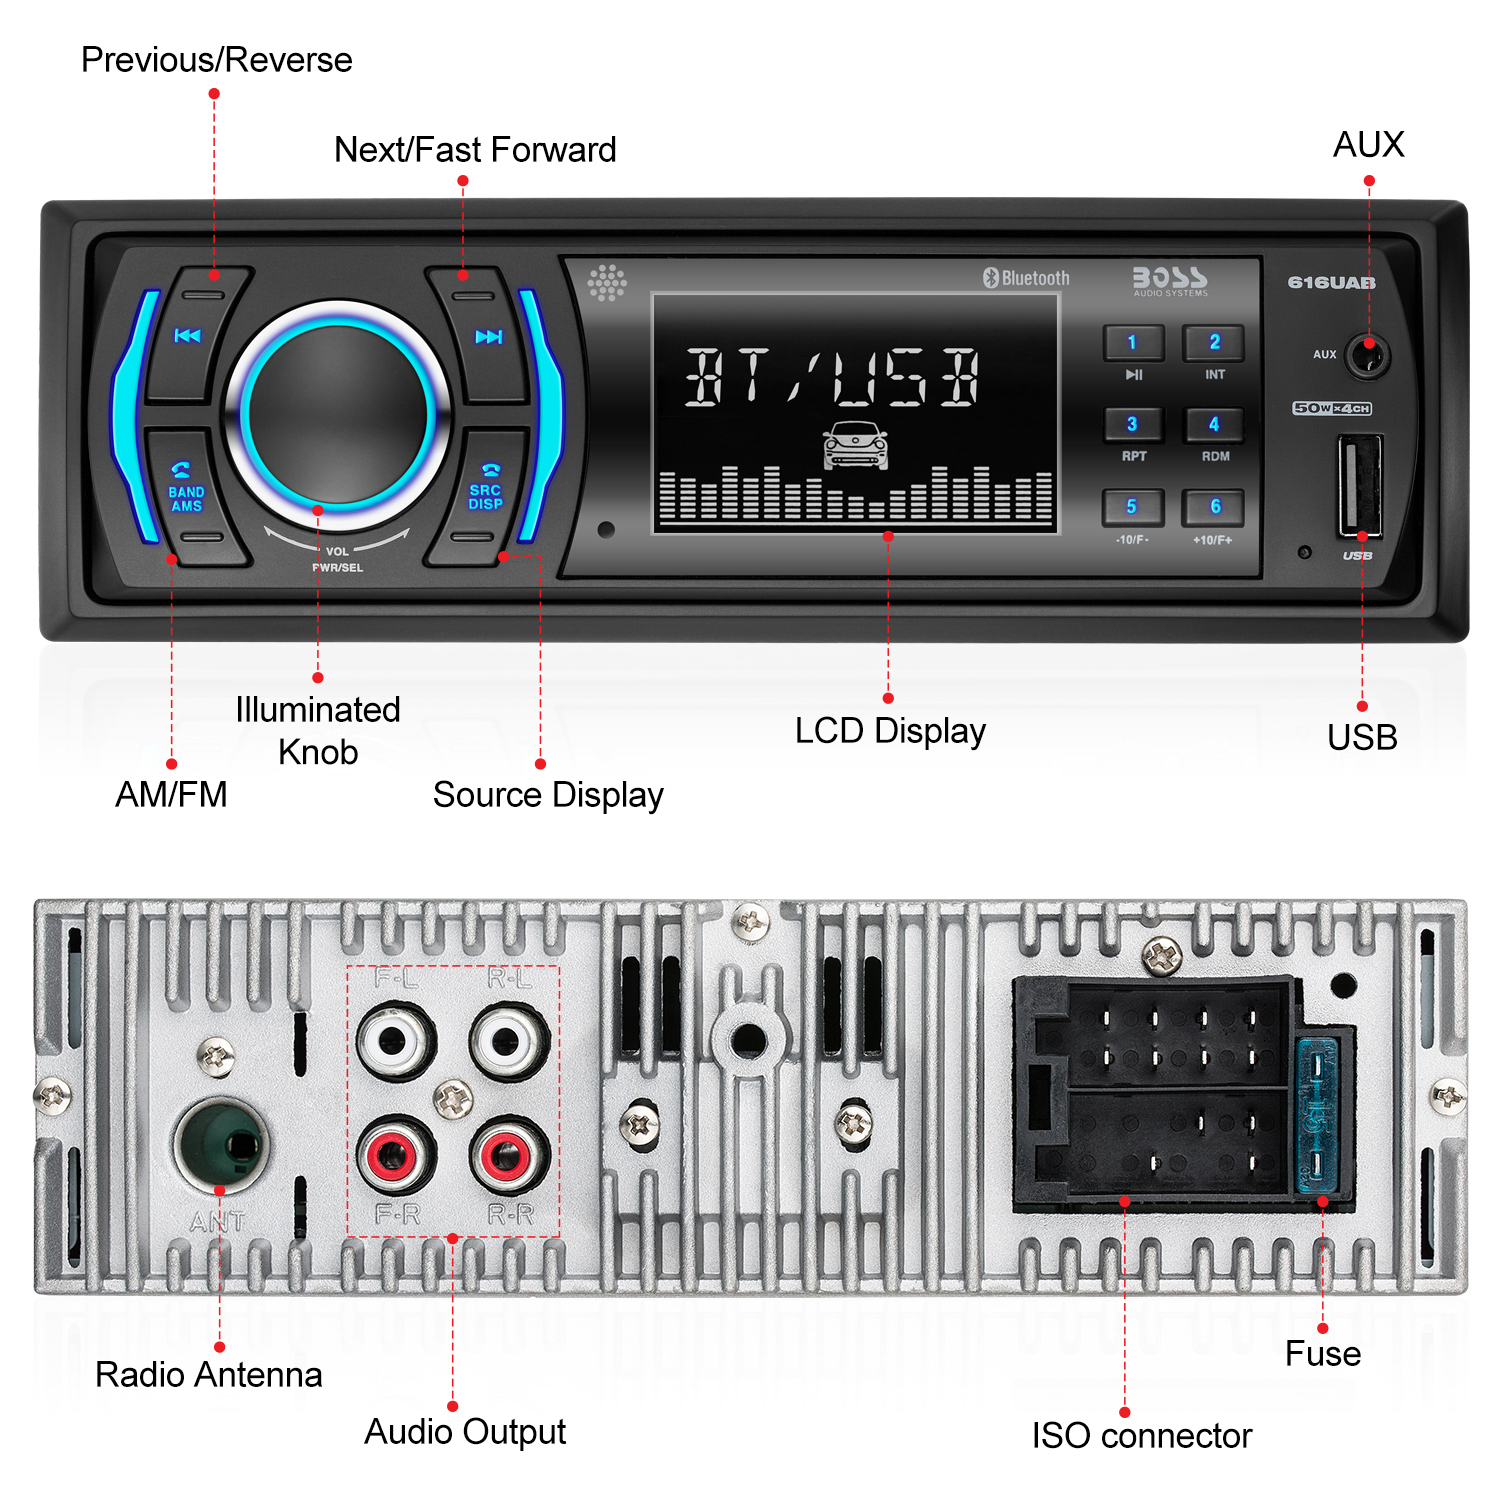 616Uab - Boss Audio Systems - Boss Audio 616Uab Single Din, Bluetooth, Mp3/usb/sd Am/fm Car Stereo Wiring Diagram